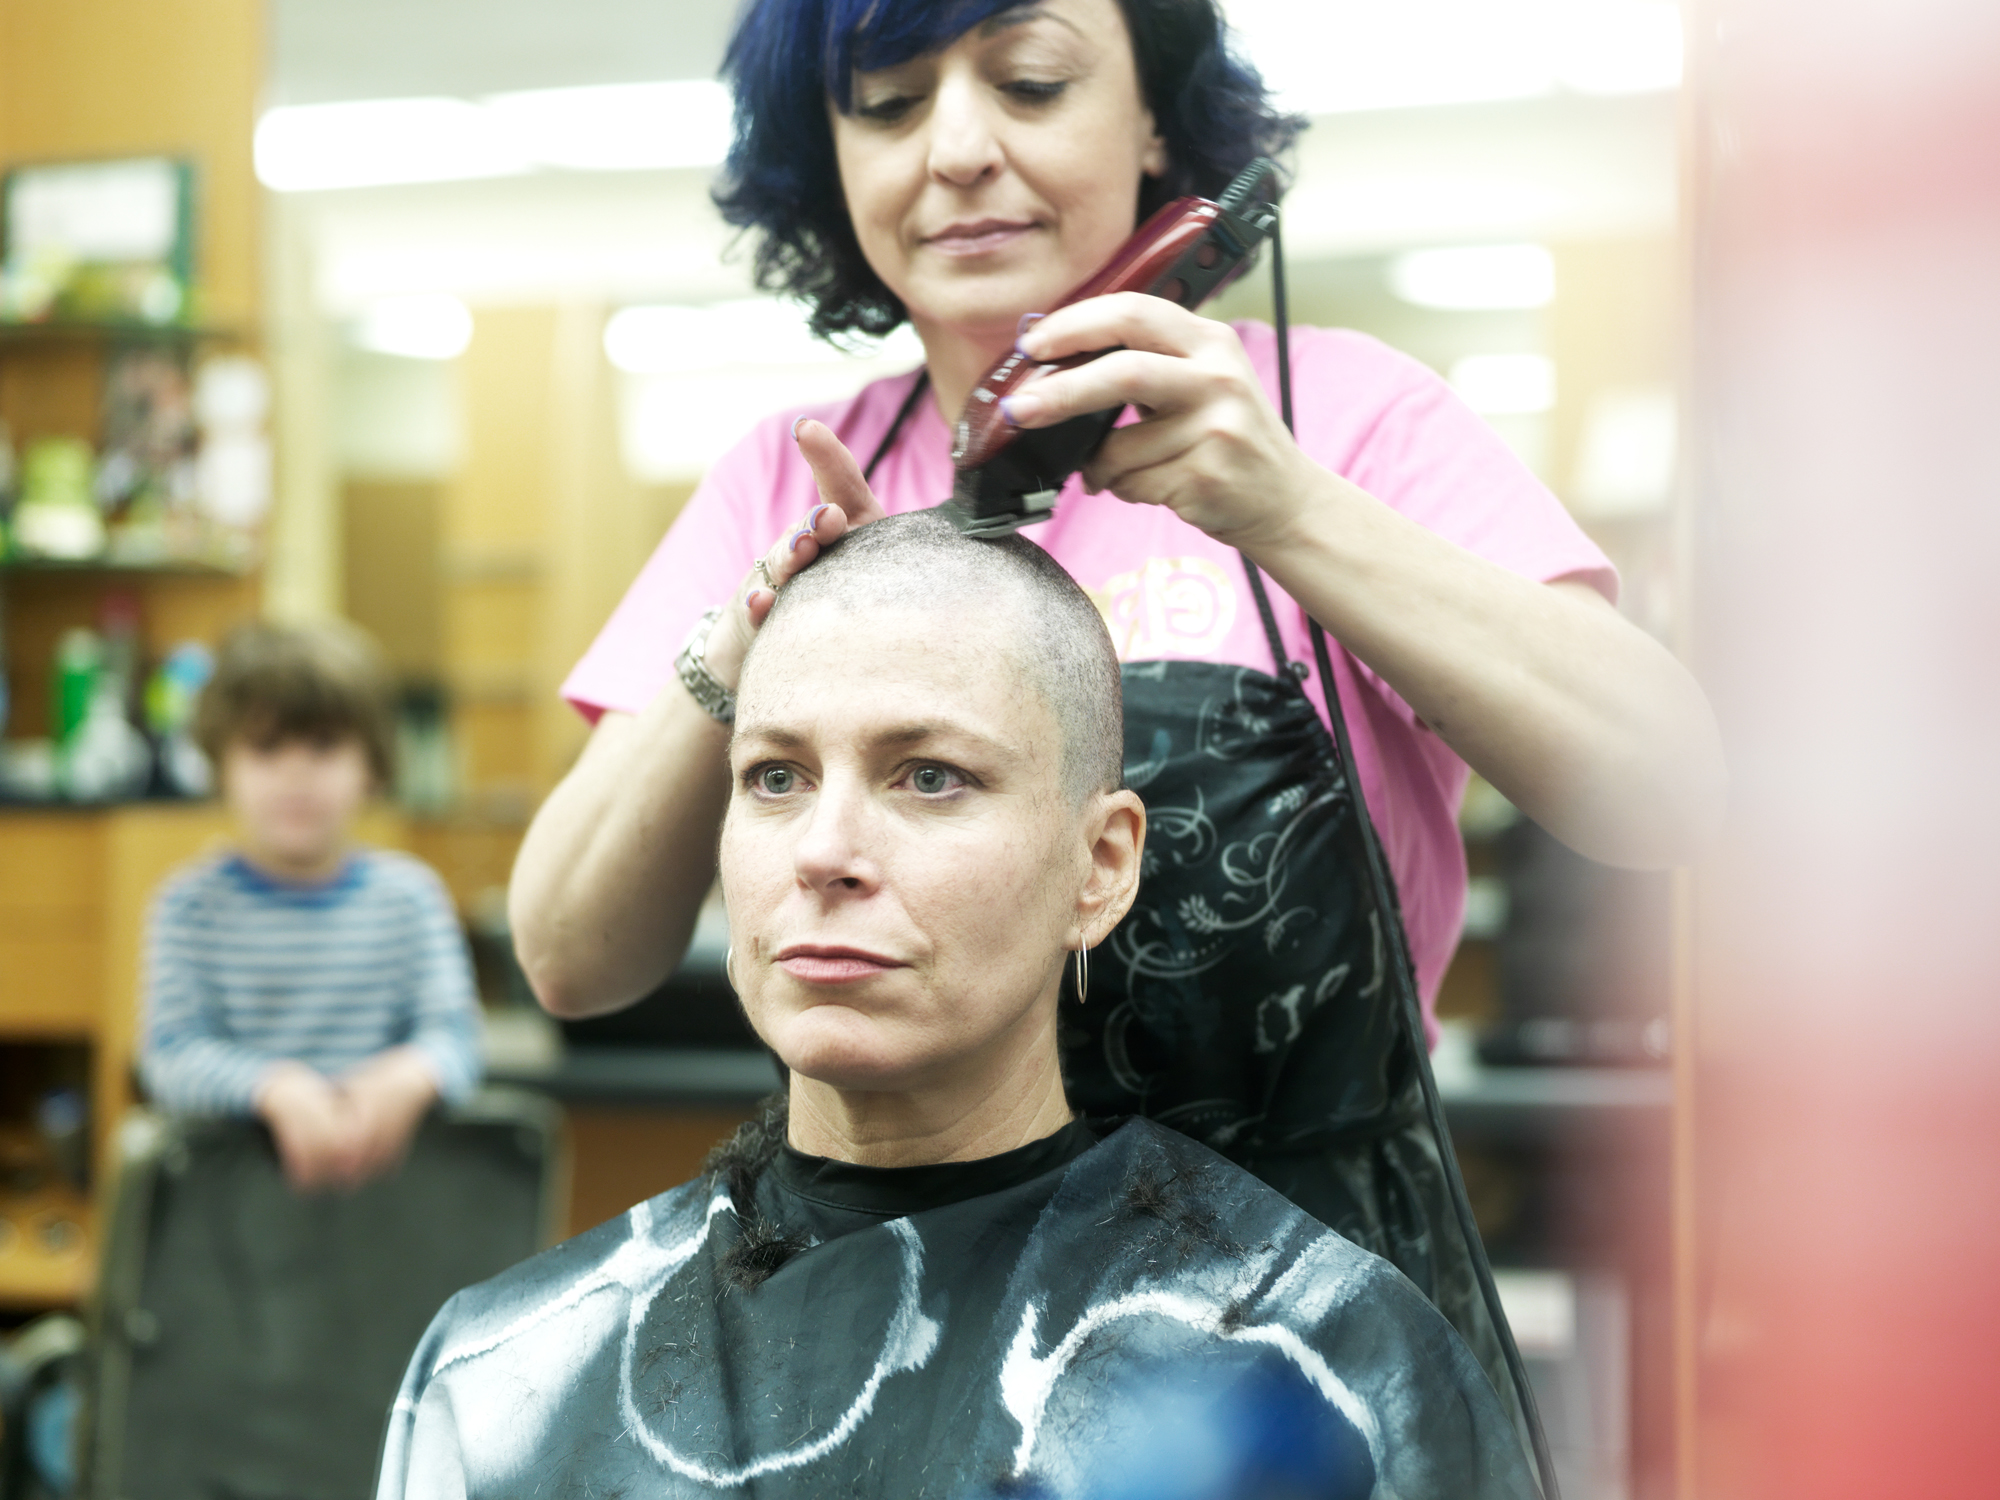 Caption: Katharine's pre-chemo haircut., Credit: Peter Konerko